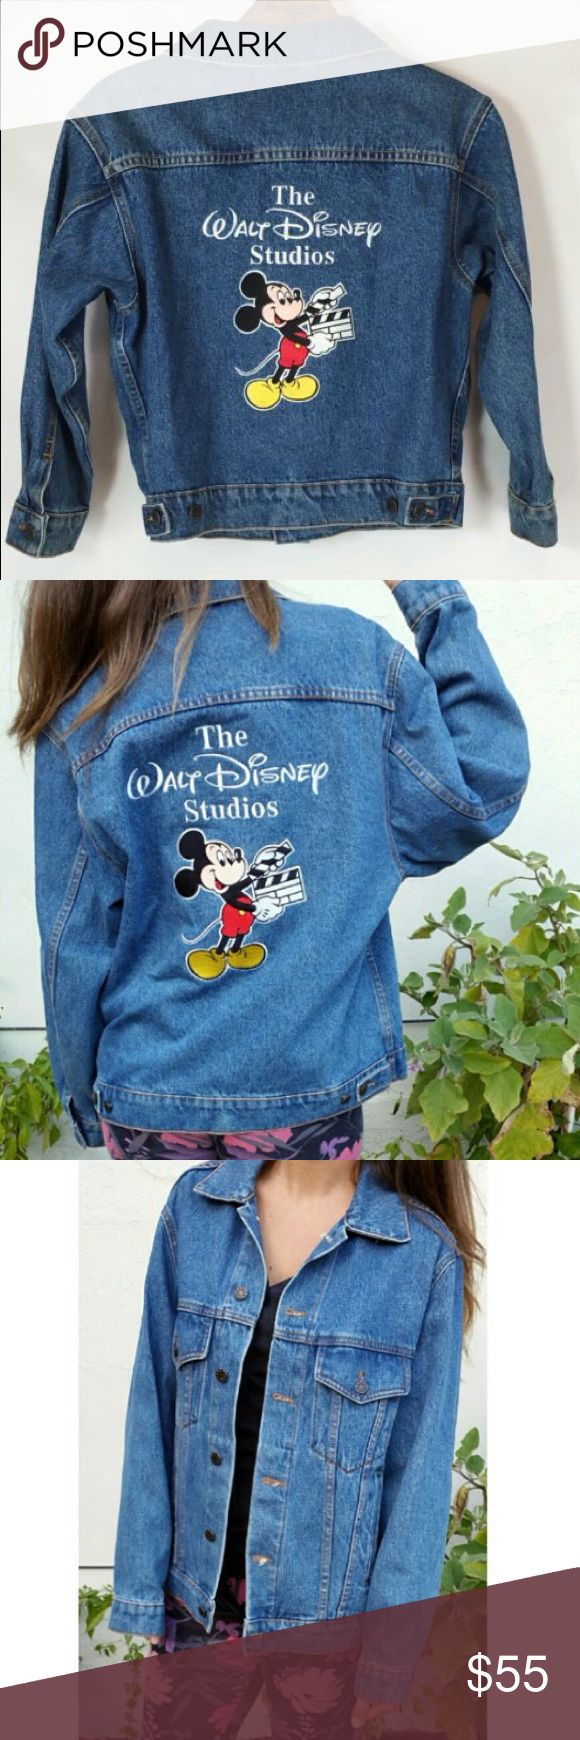 Vintage Walt Disney Studios jean jacket So so so cute! Bought this on impulse in hopes of wearing it to Disneyland but I have yet to go haha. Very thick and great quality. Can't be found anywhere else. Perfect condition! Urban Outfitters Jackets & Coats Jean Jackets